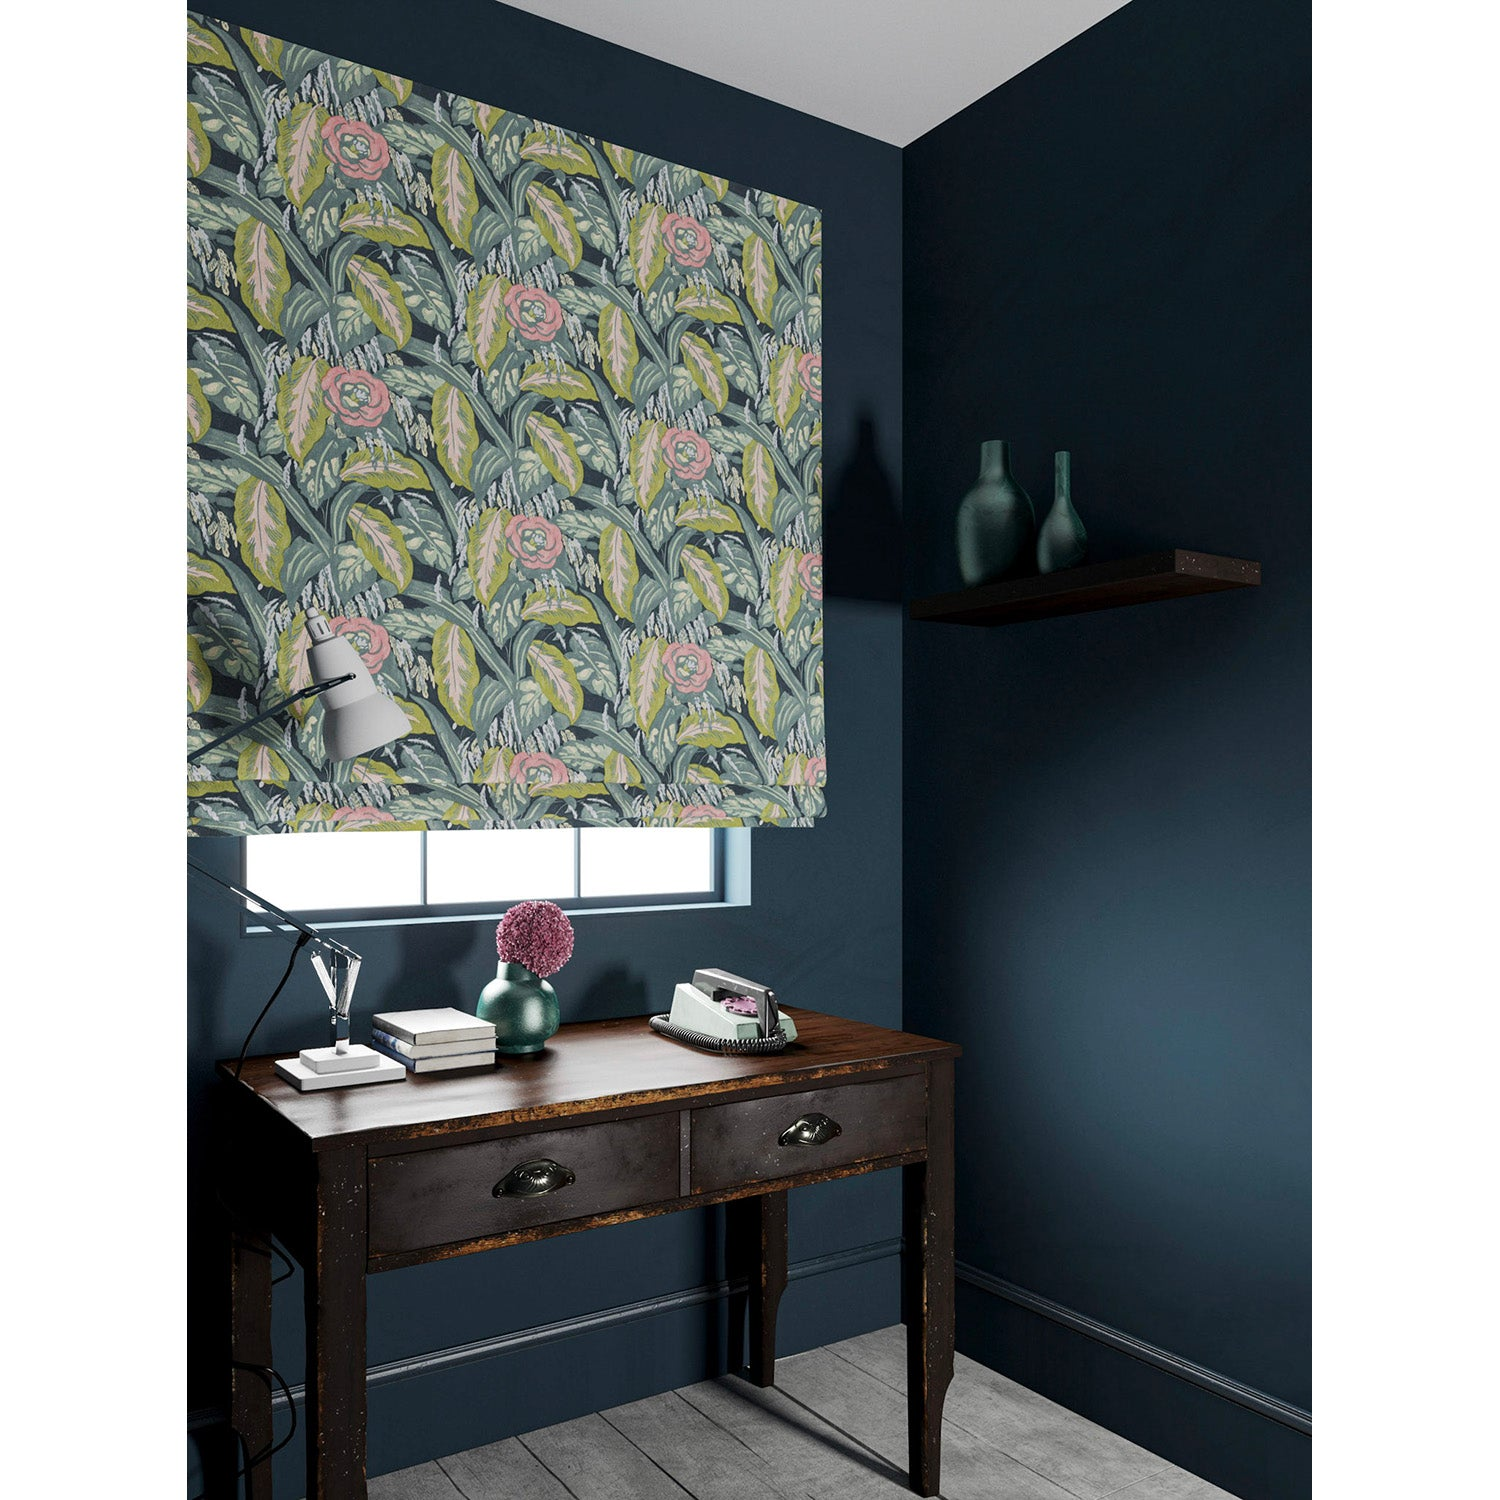 Velvet blind in a pink and blue velvet floral fabric with a stain resistant finish